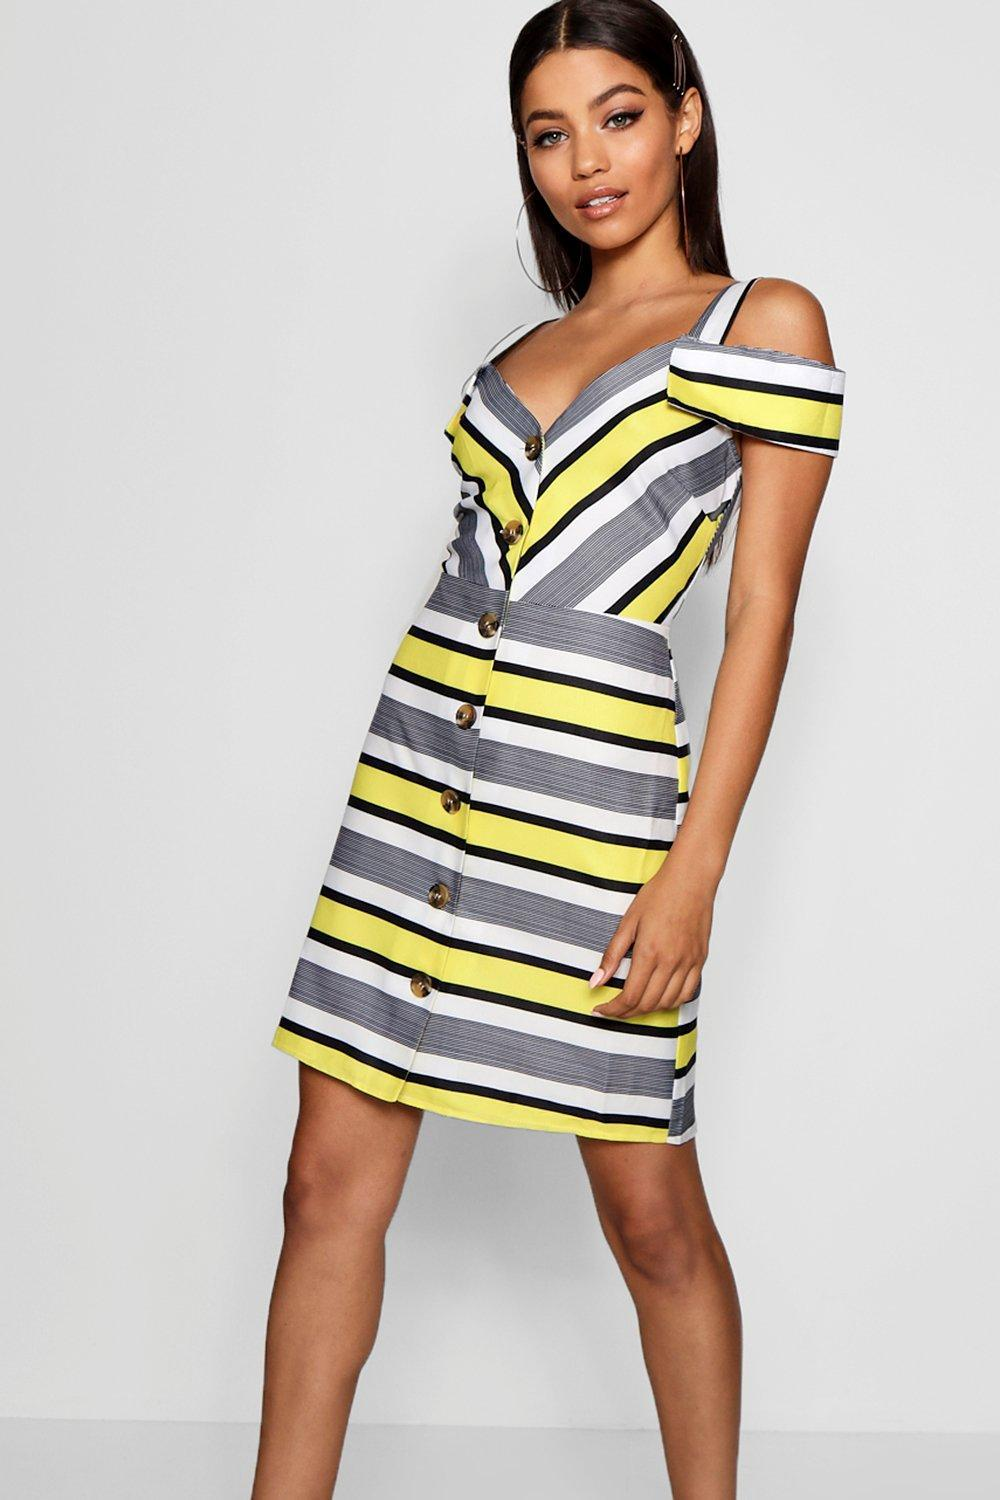 53f5ac2192bc5 Lyst - Boohoo Stripe Cold Shoulder Summer Dress in Yellow